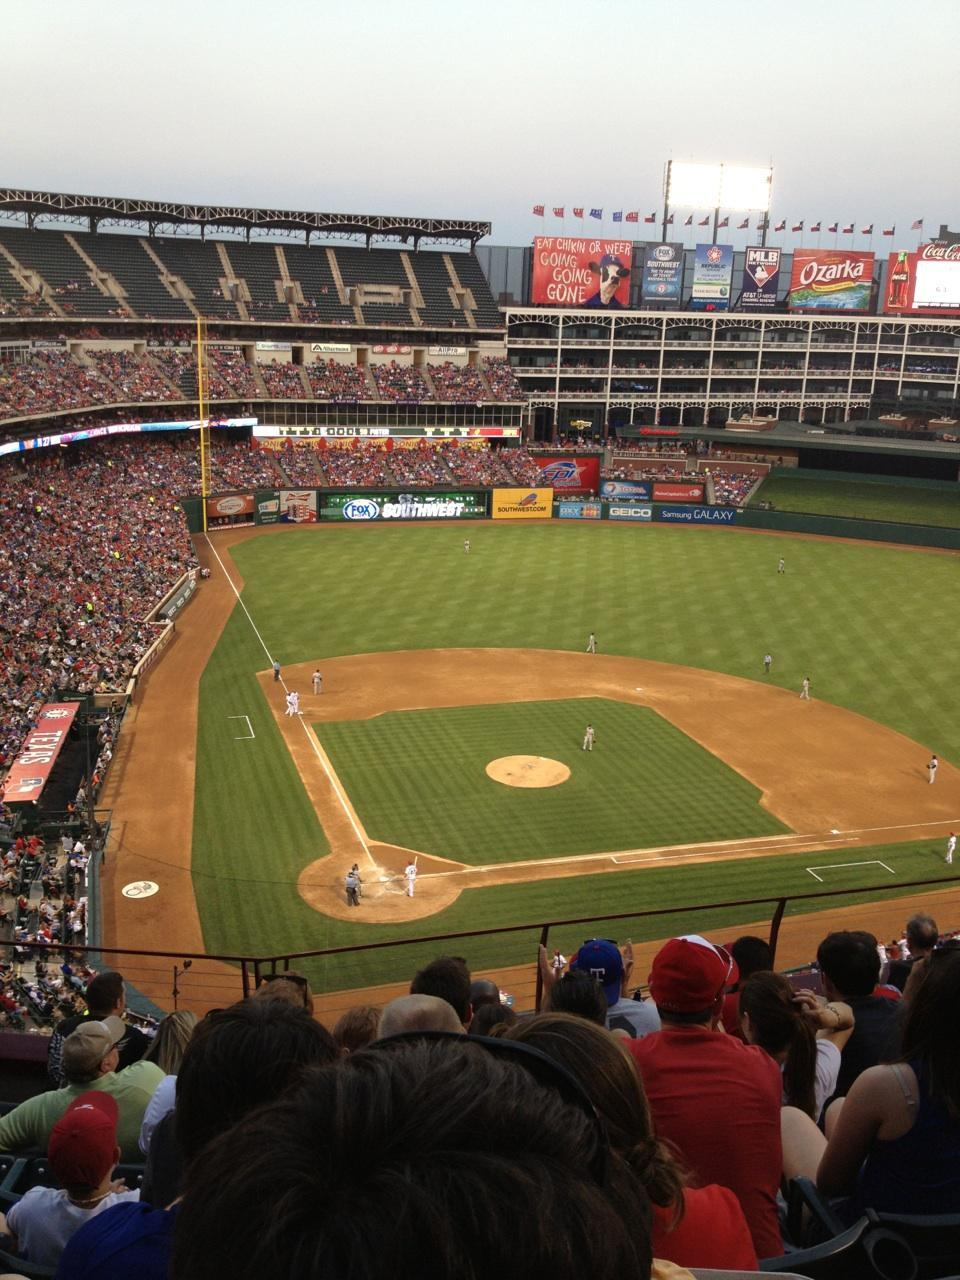 Globe Life Park in Arlington Section 329 Row 8 Seat 11